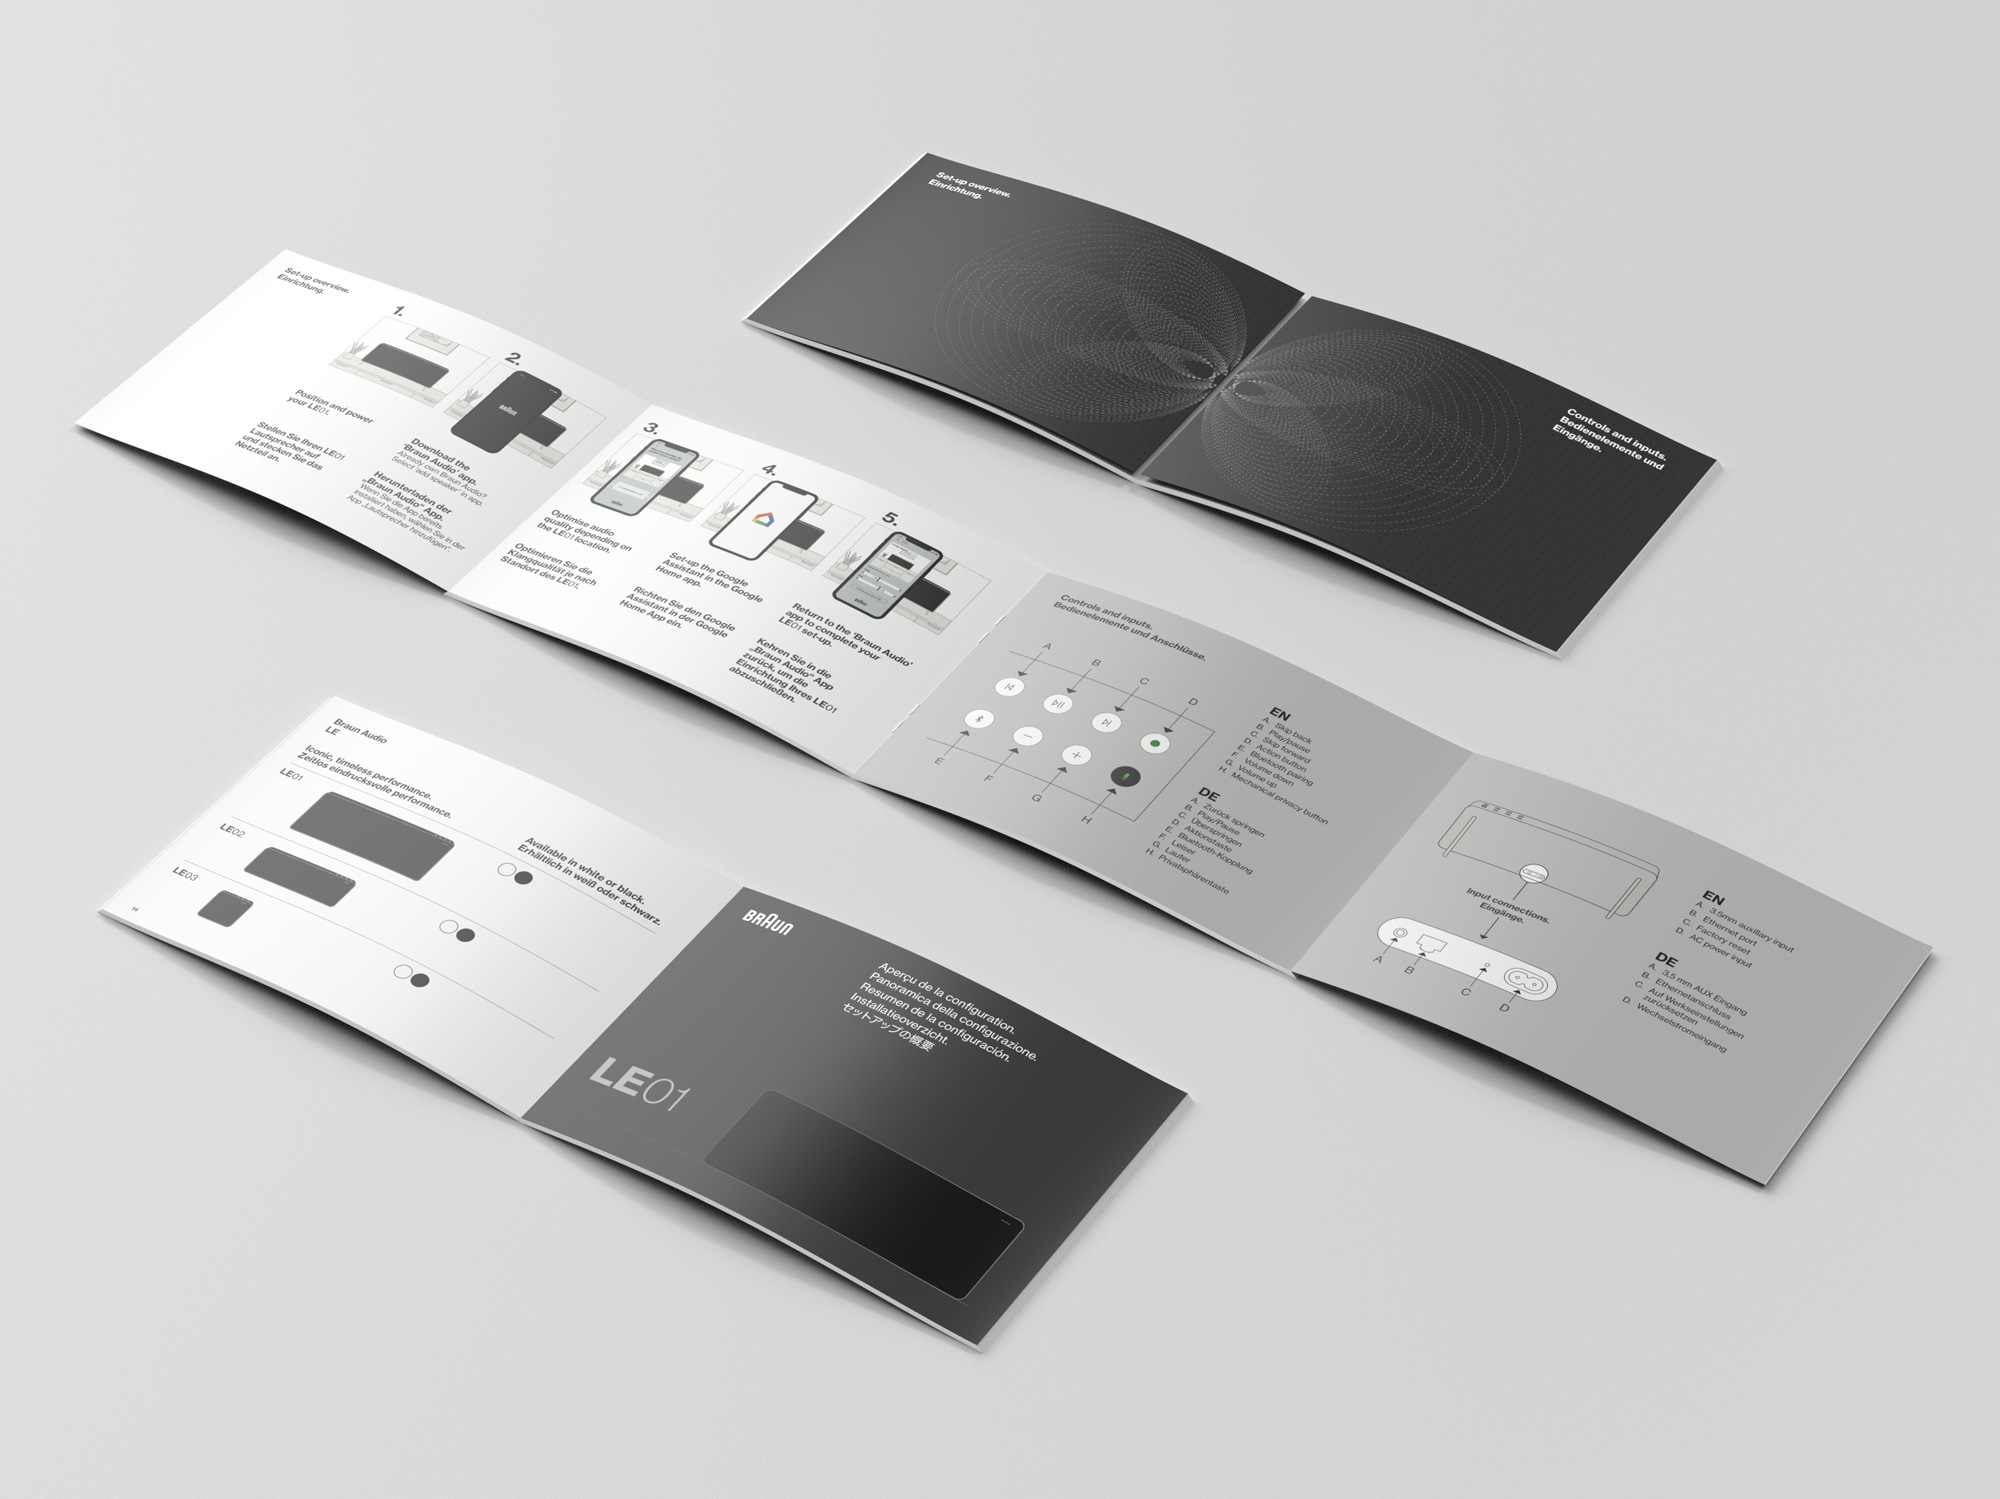 New Identity and Packaging for Braun Audio by Precipice Design